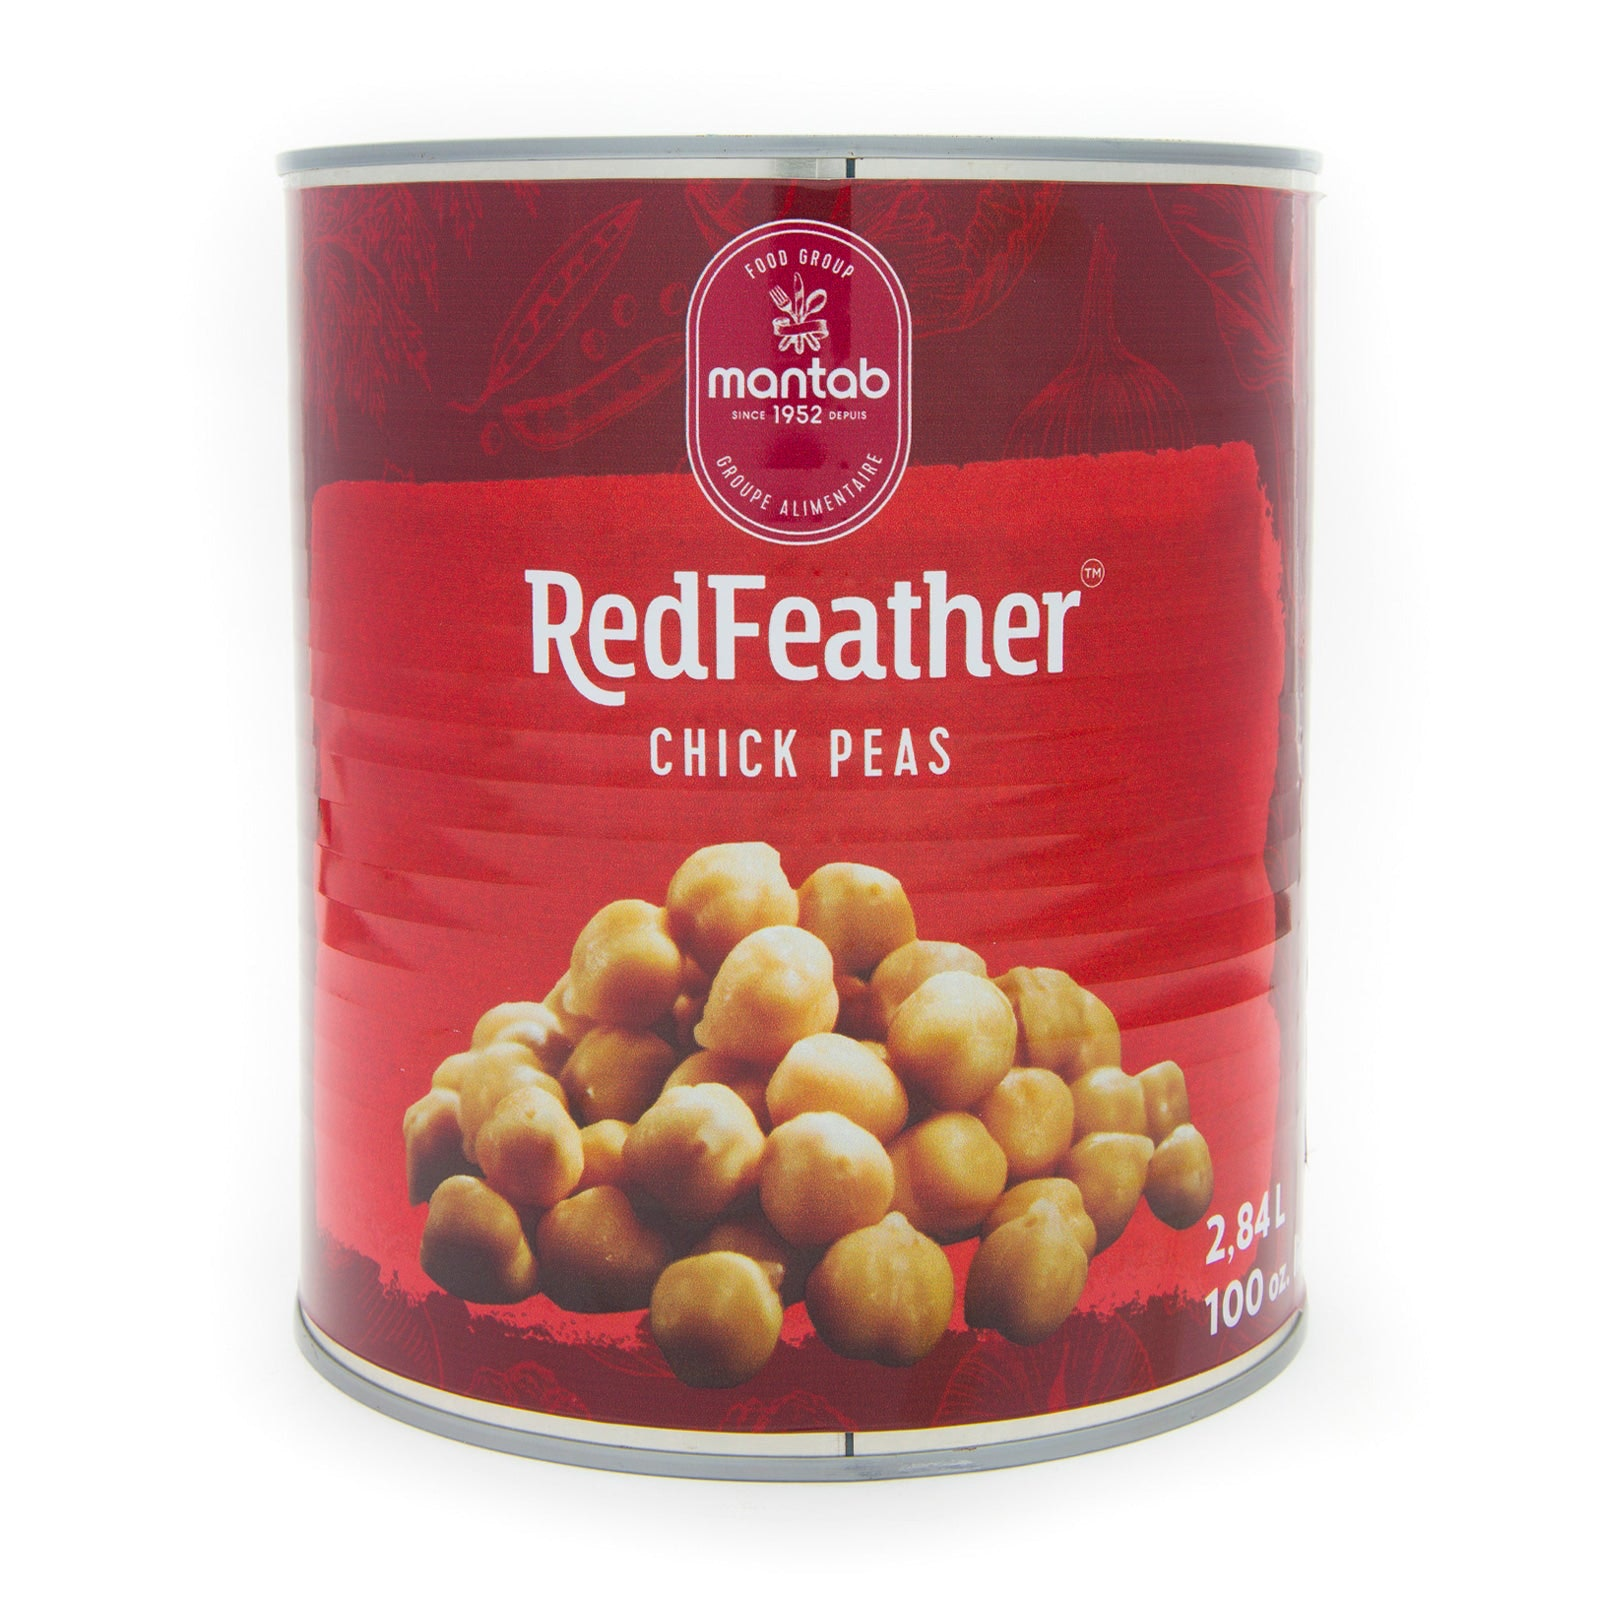 RED FEATHER Chick peas